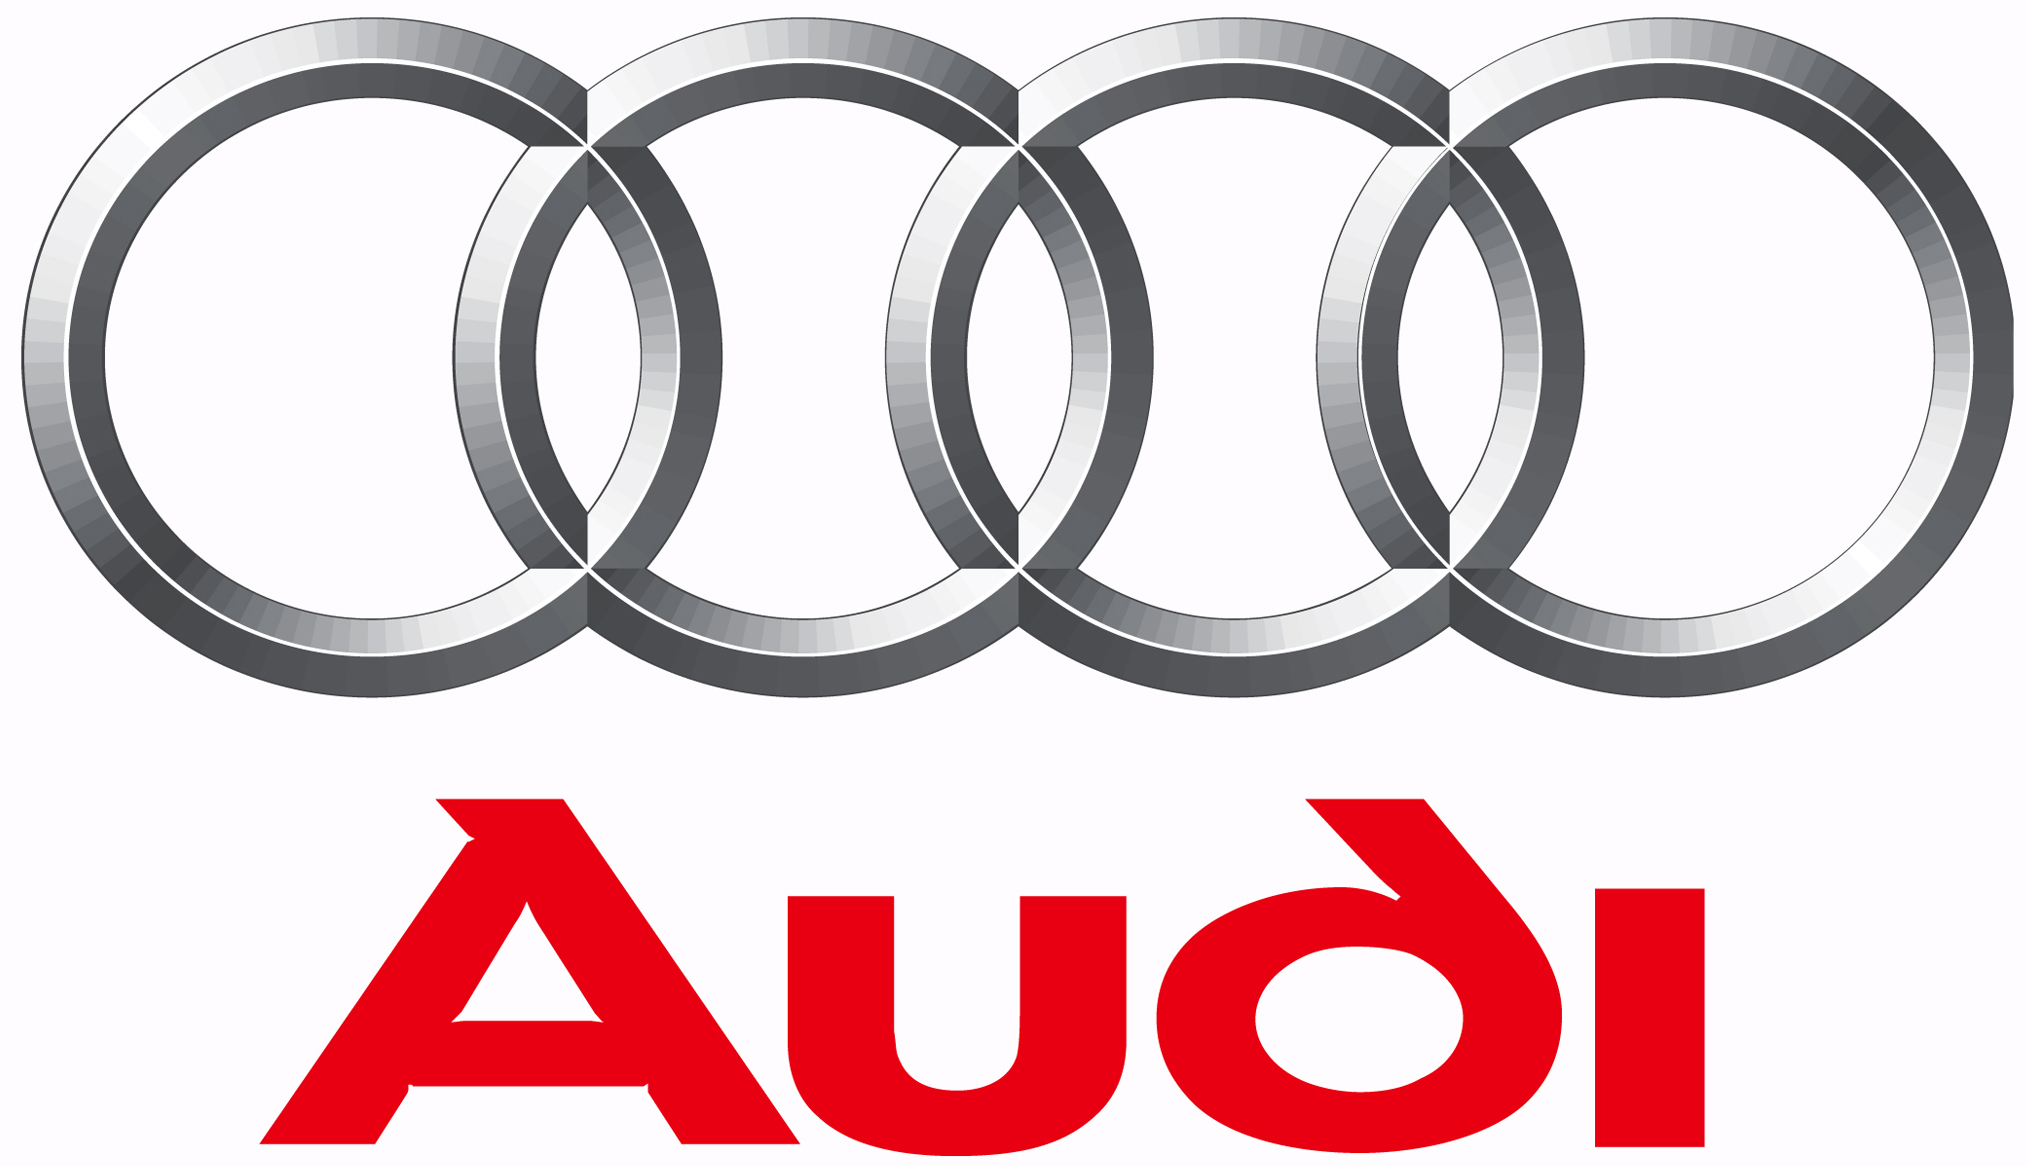 Audi Logo Wallpaper 3d: Audi Logo Wallpapers, Pictures, Images